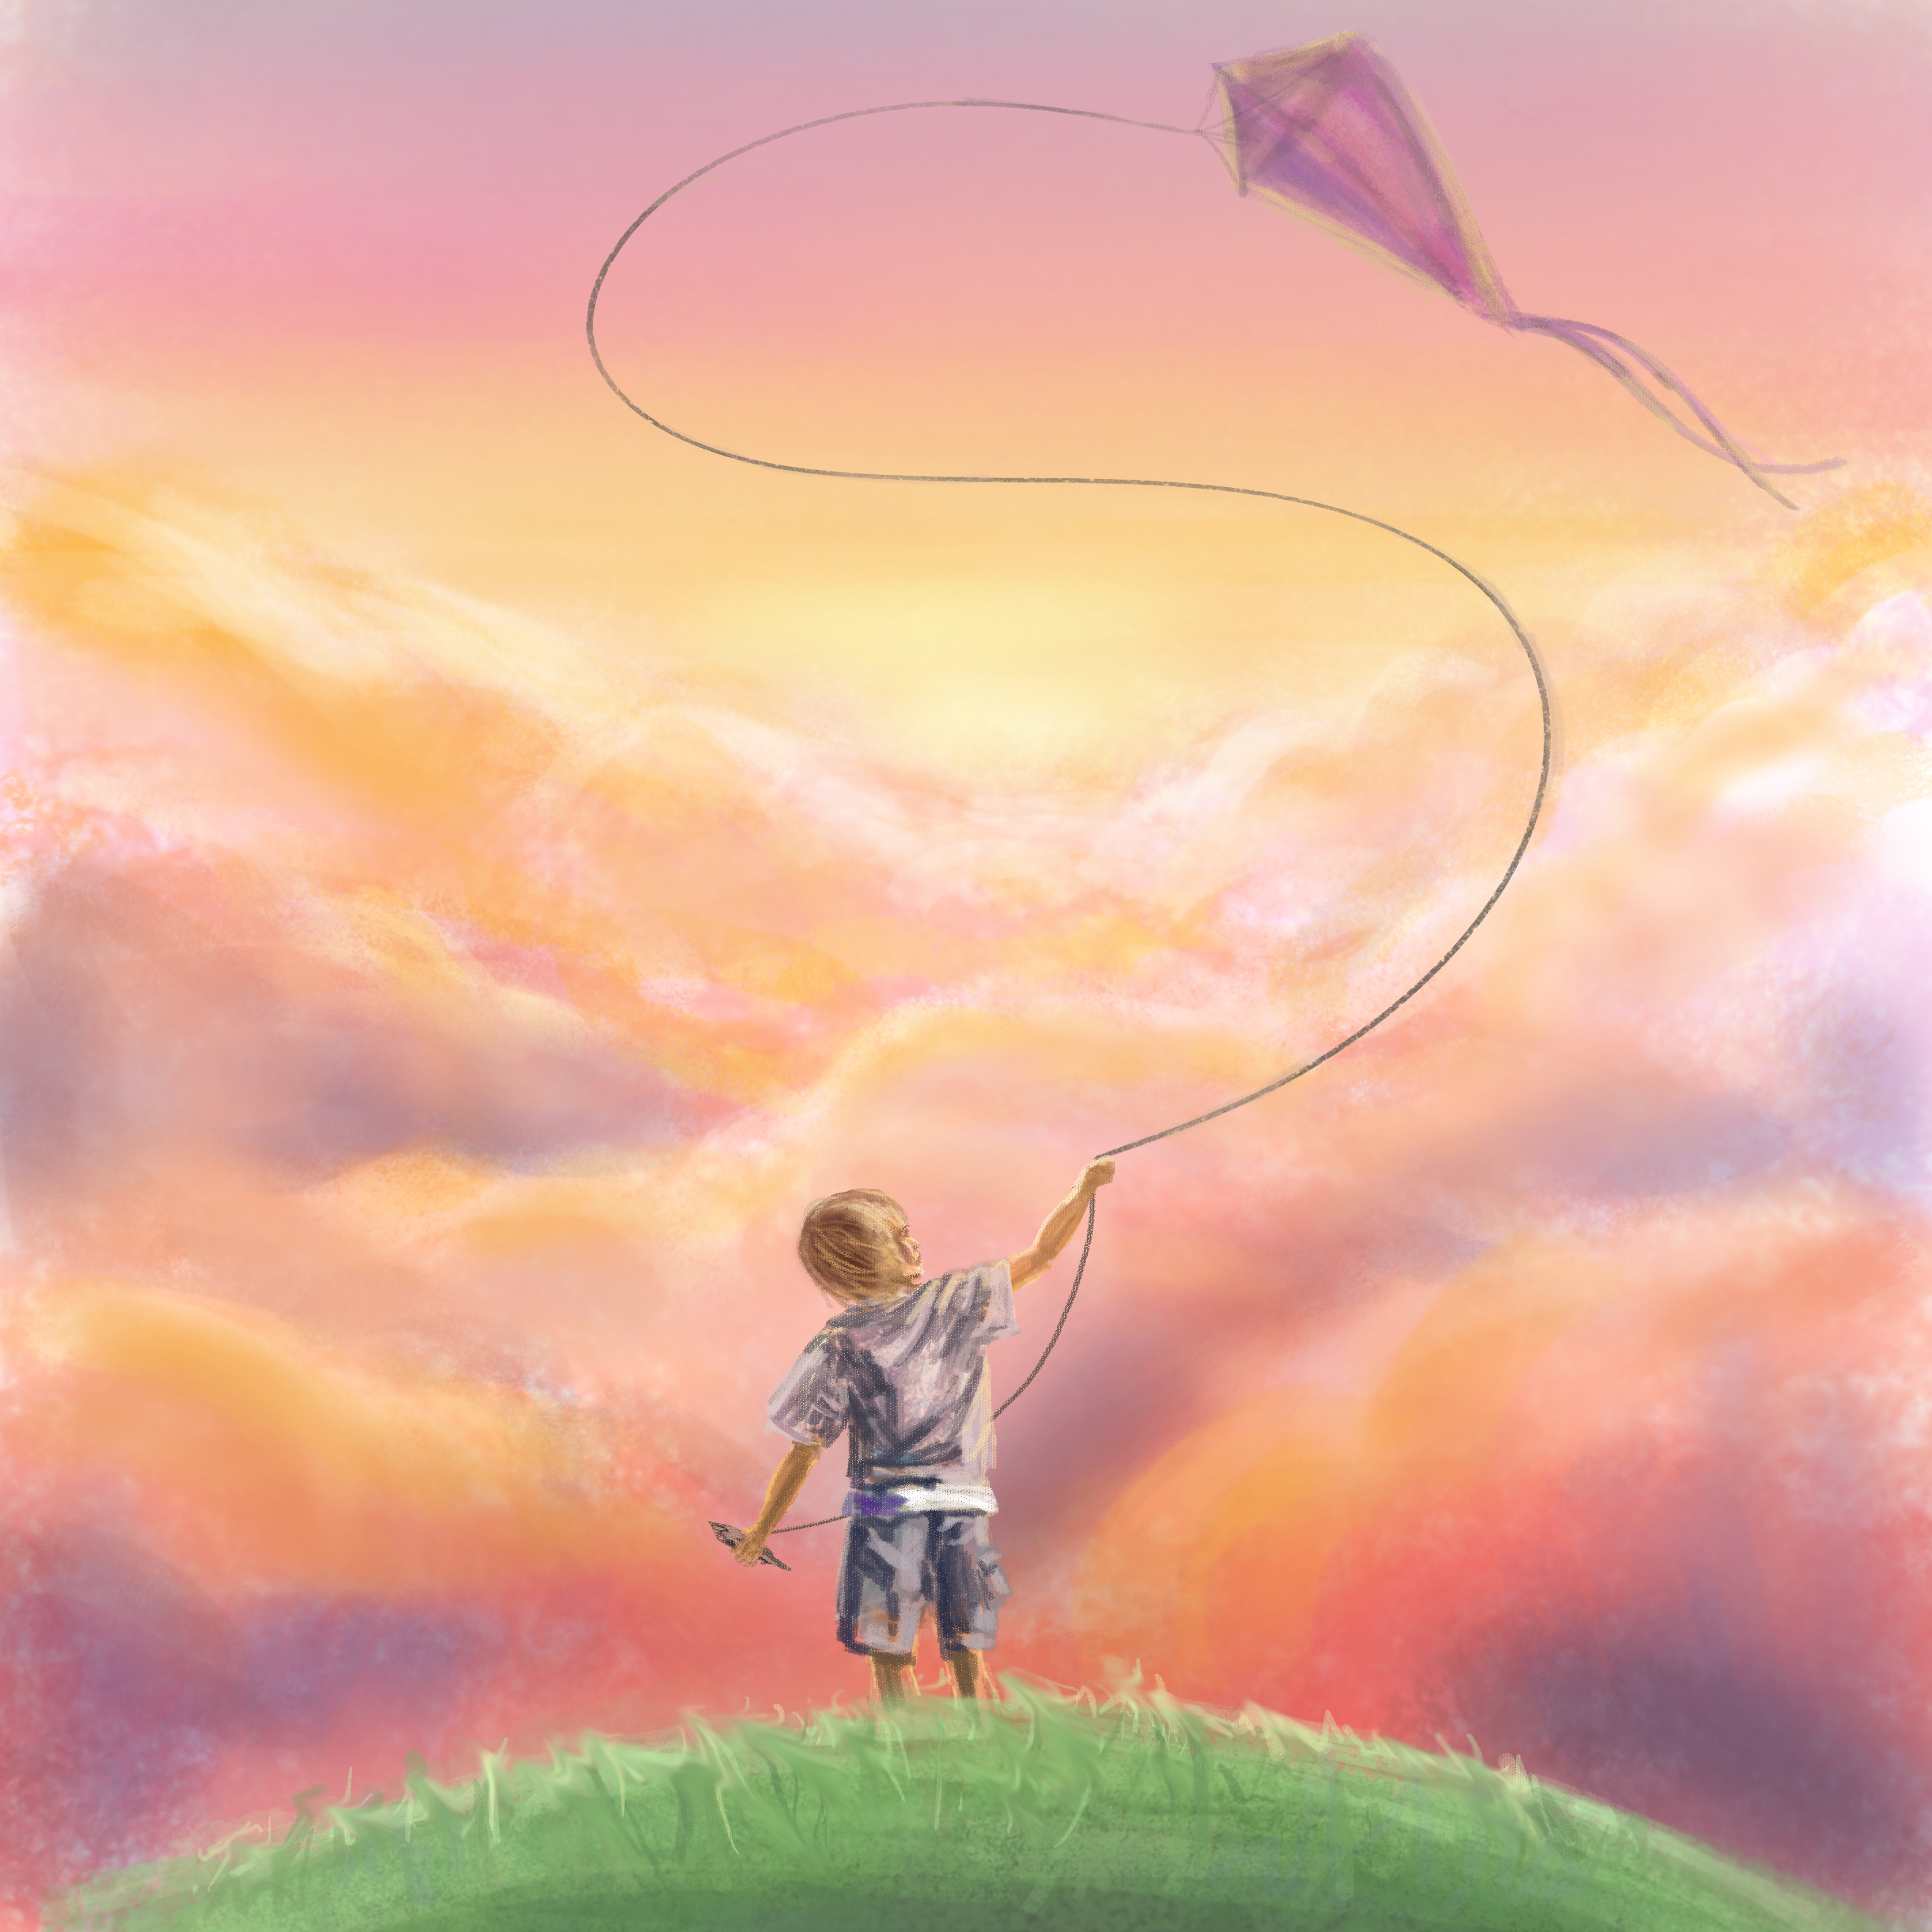 A boy with the wind